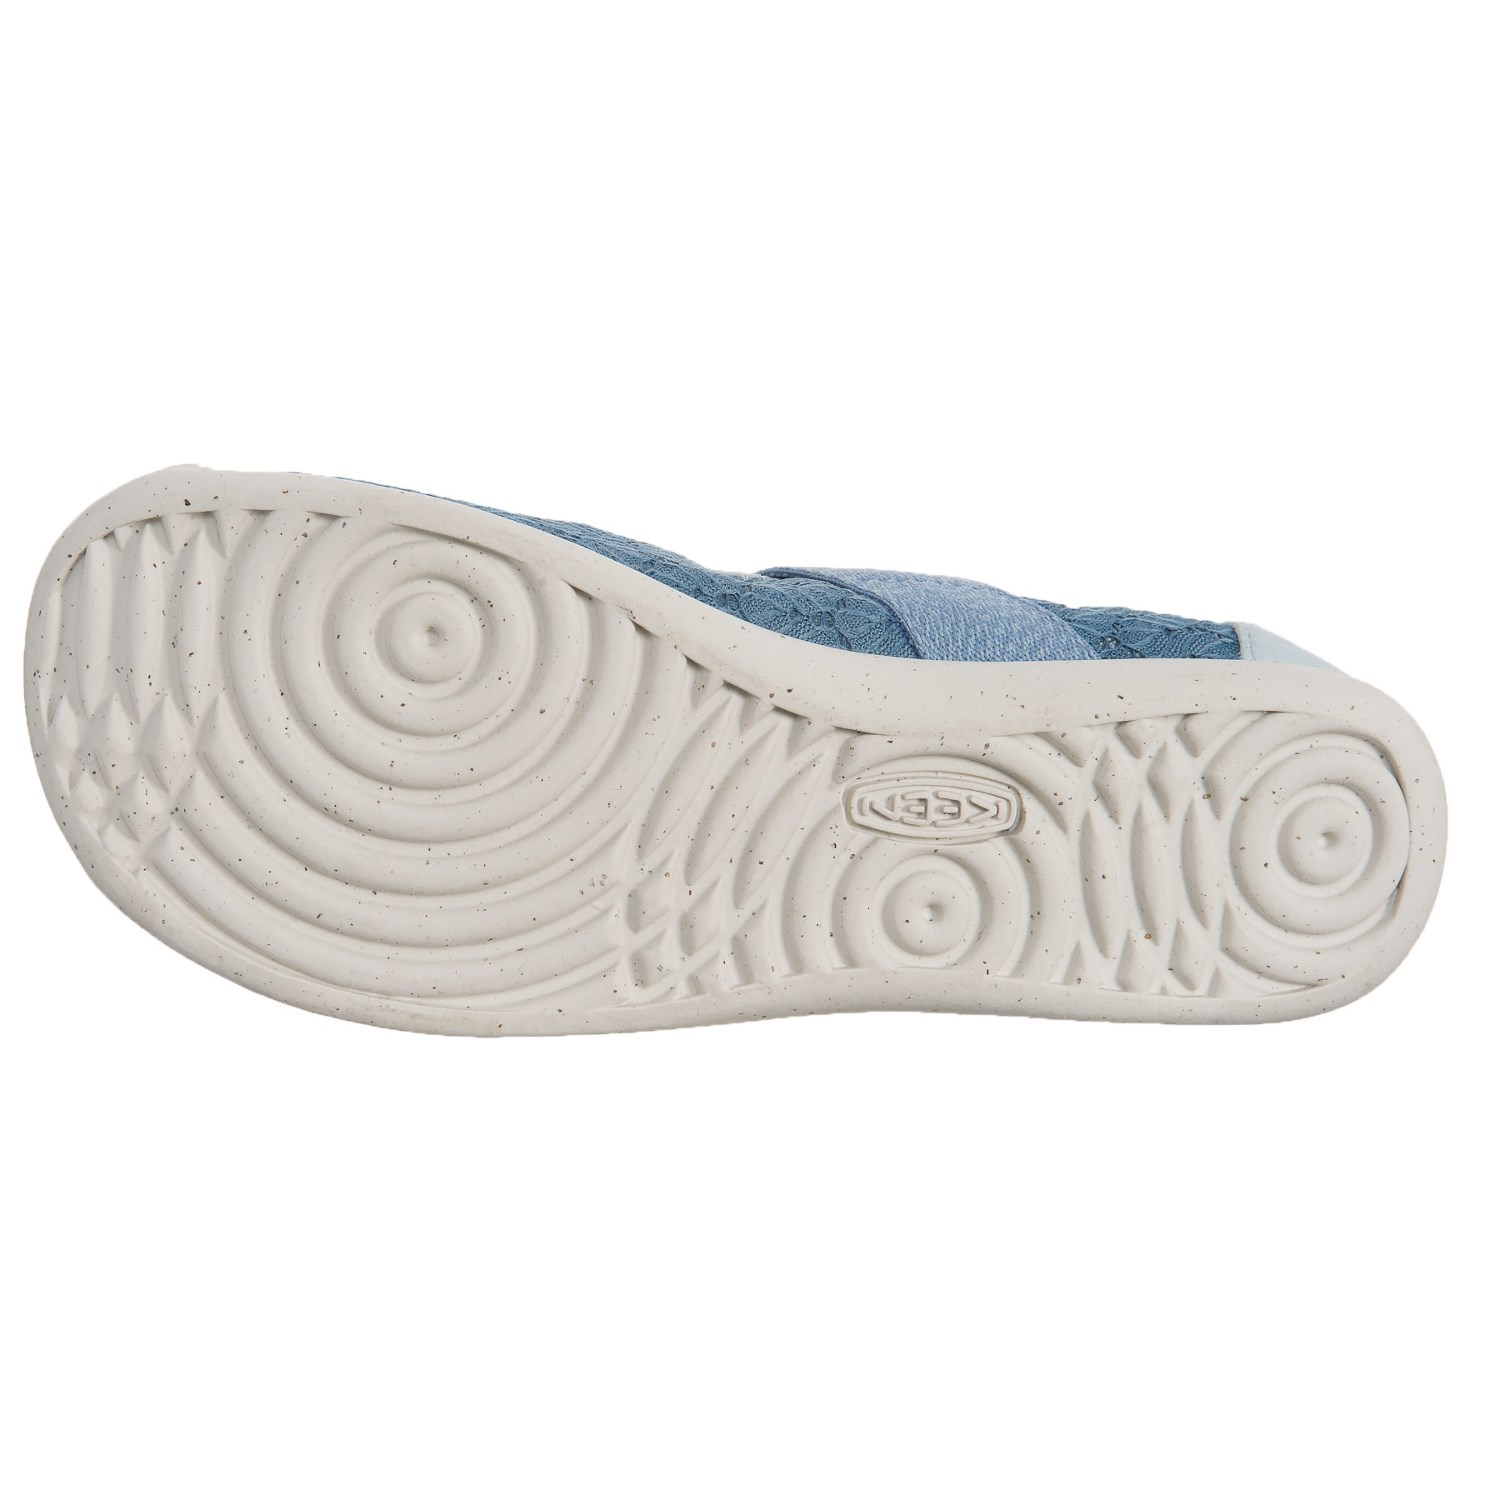 71283eeb6642 Keen Sienna Mary Jane Shoes (For Women) - Save 44%